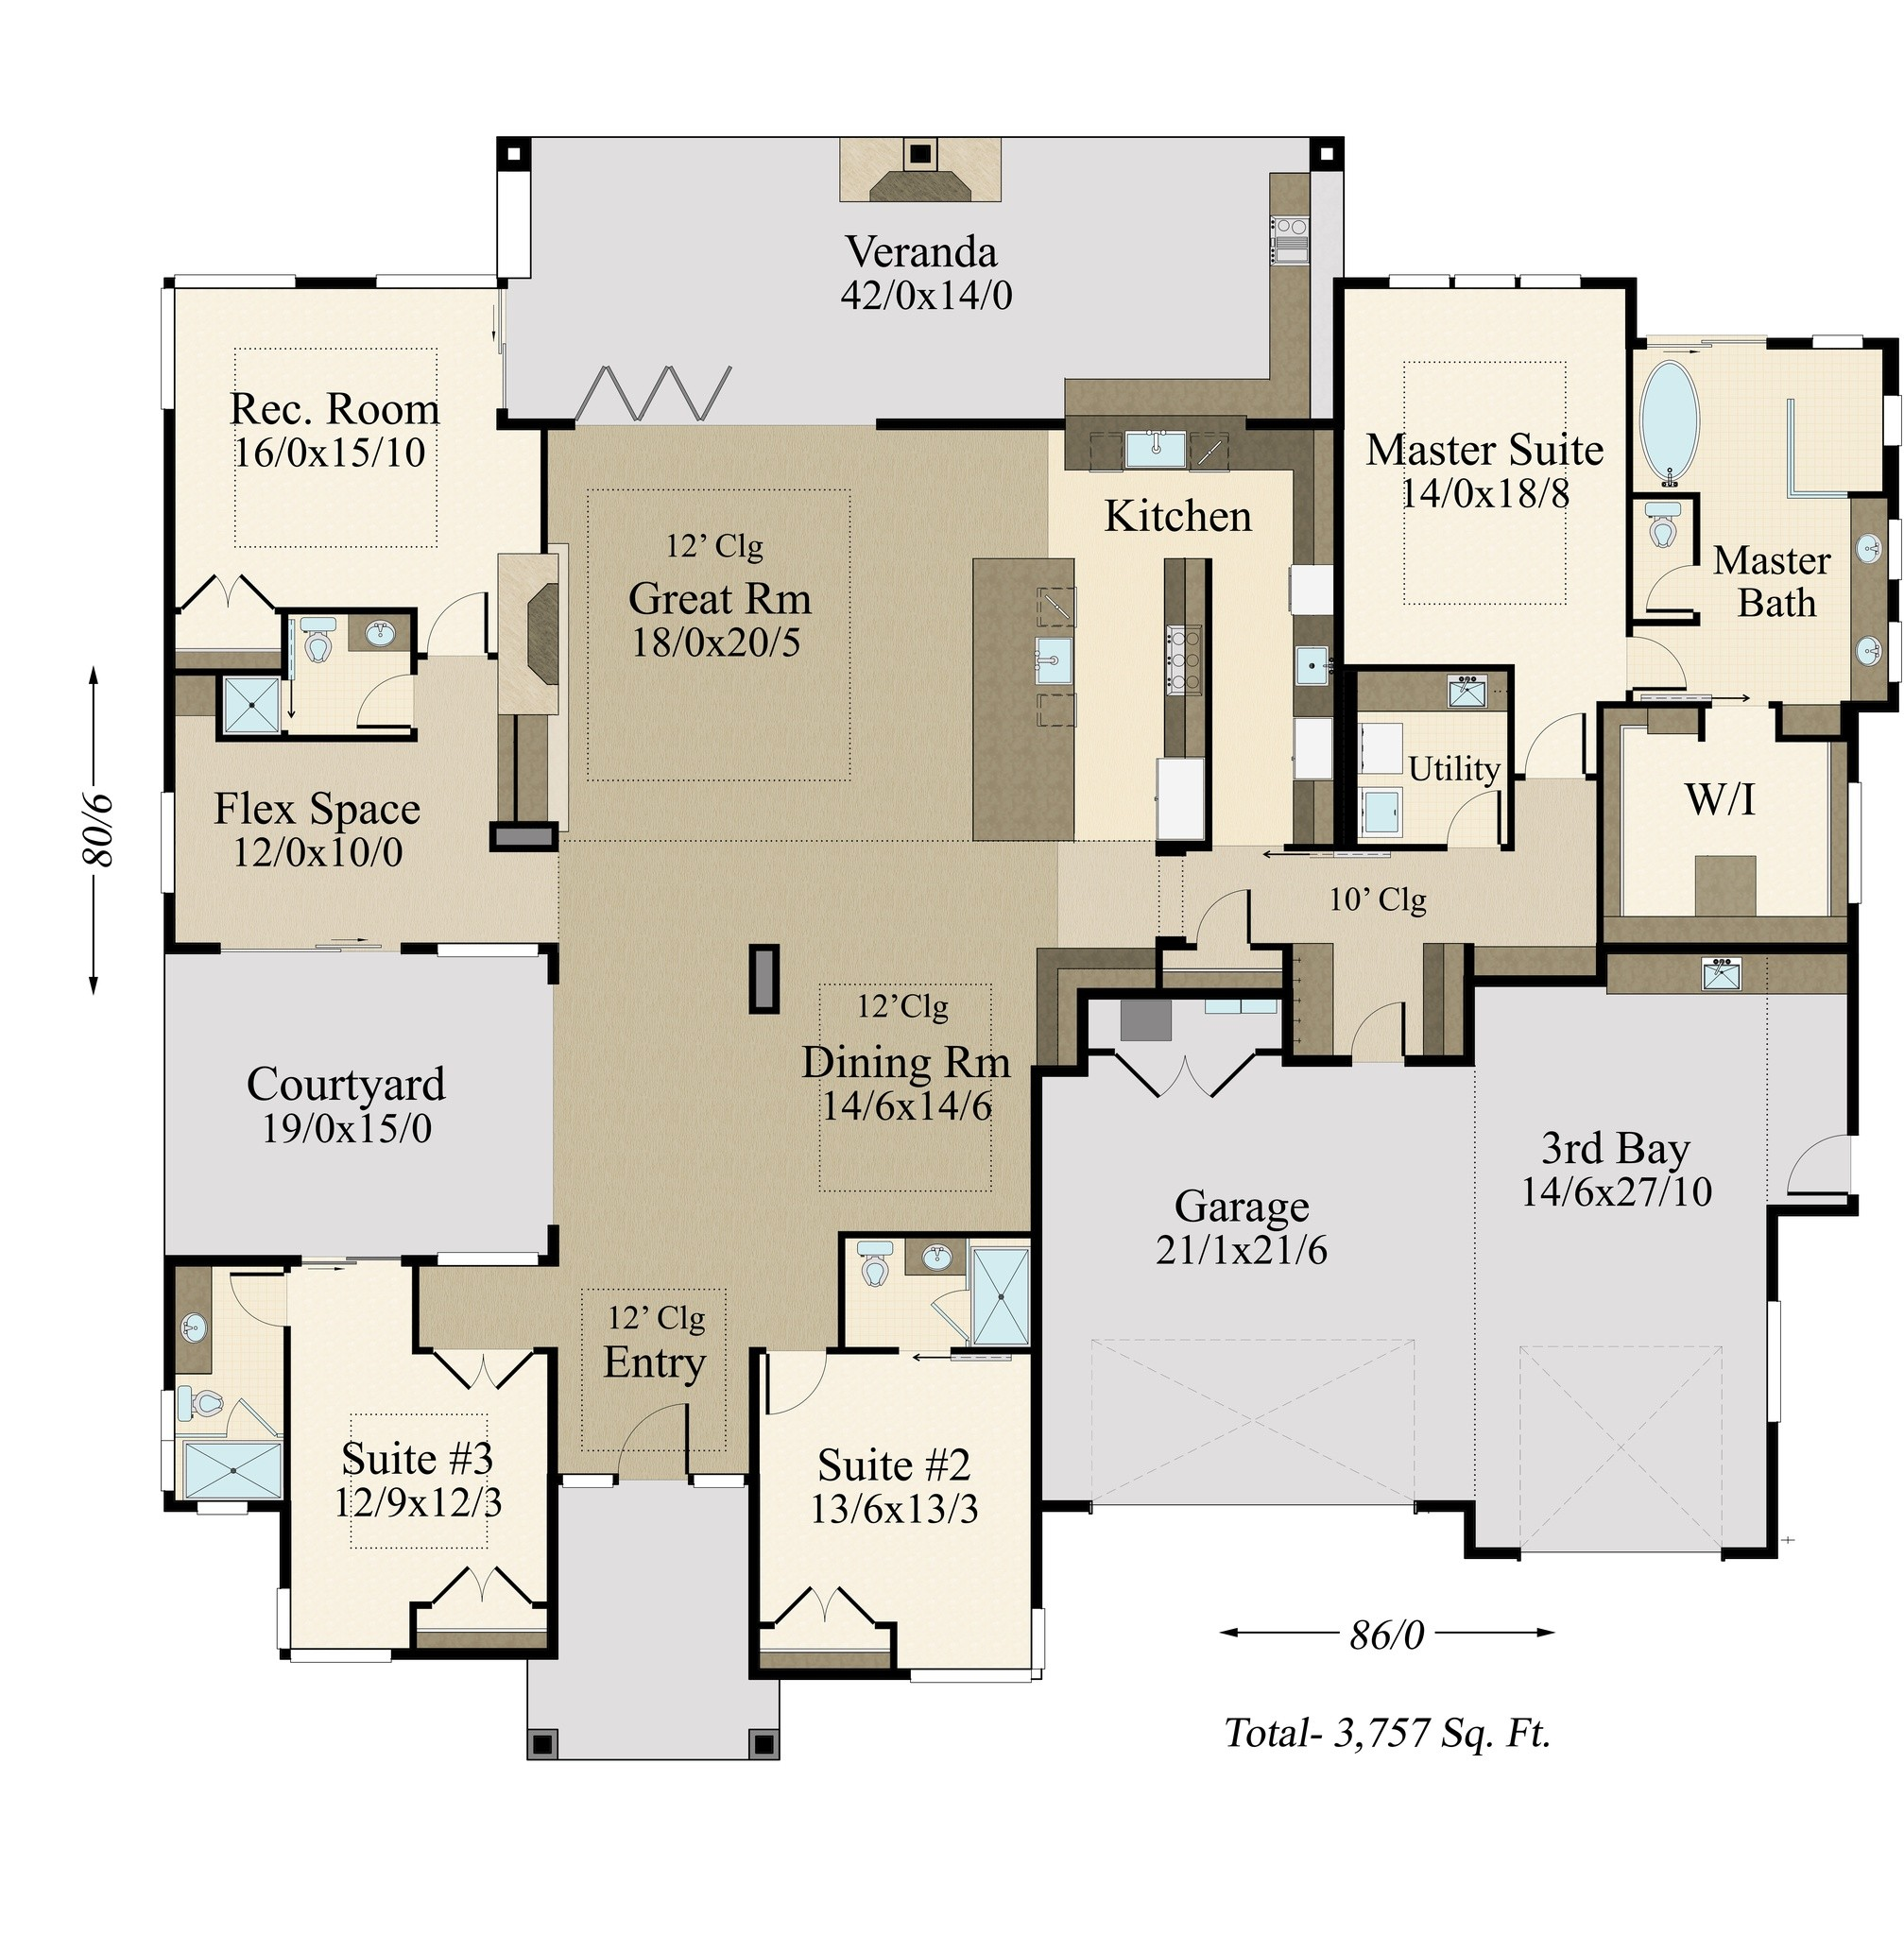 Detached Garage Plan By Mark Stewart Home Design: One Story Modern House Plans With